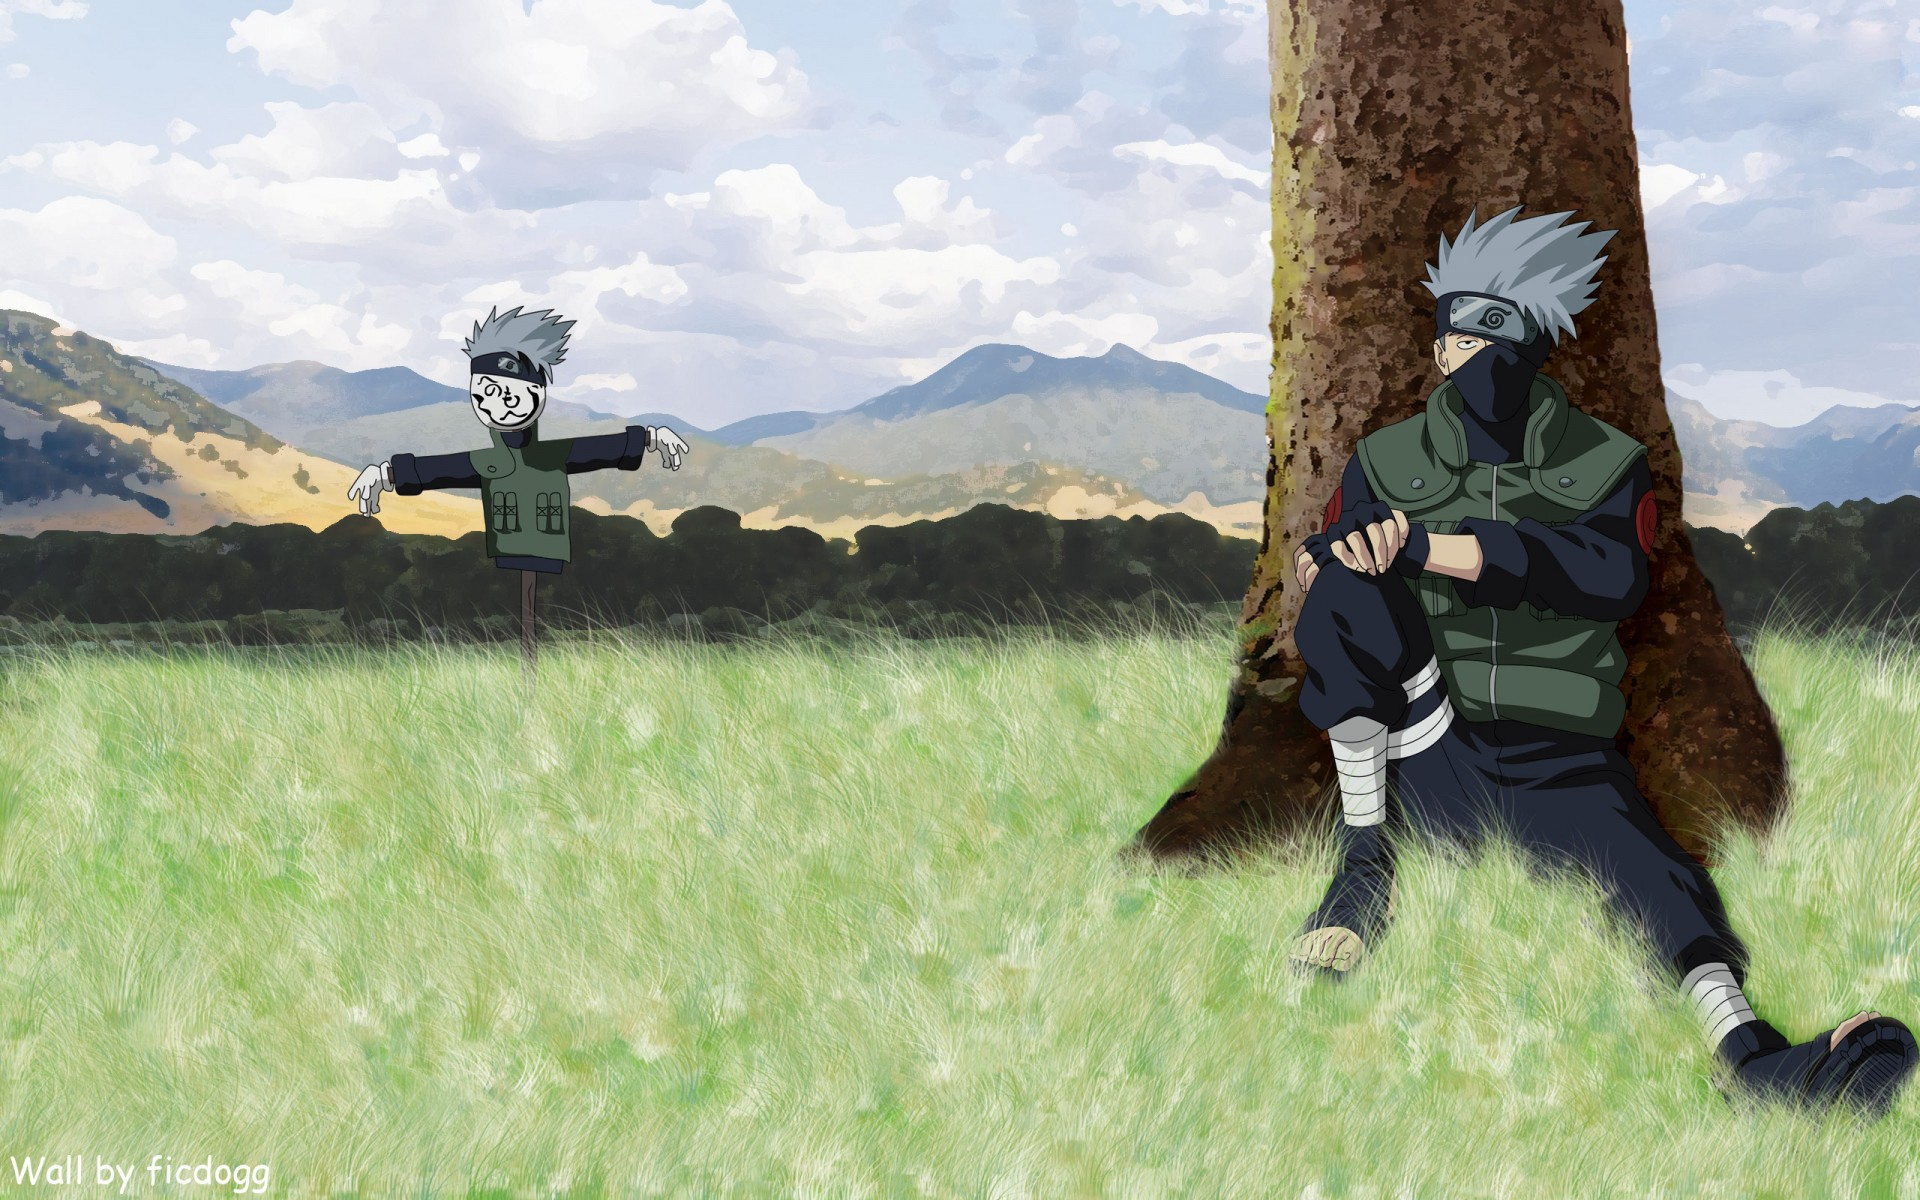 Naruto Kakashi HD Desktop Wallpaper HD Desktop Wallpaper 1920x1200